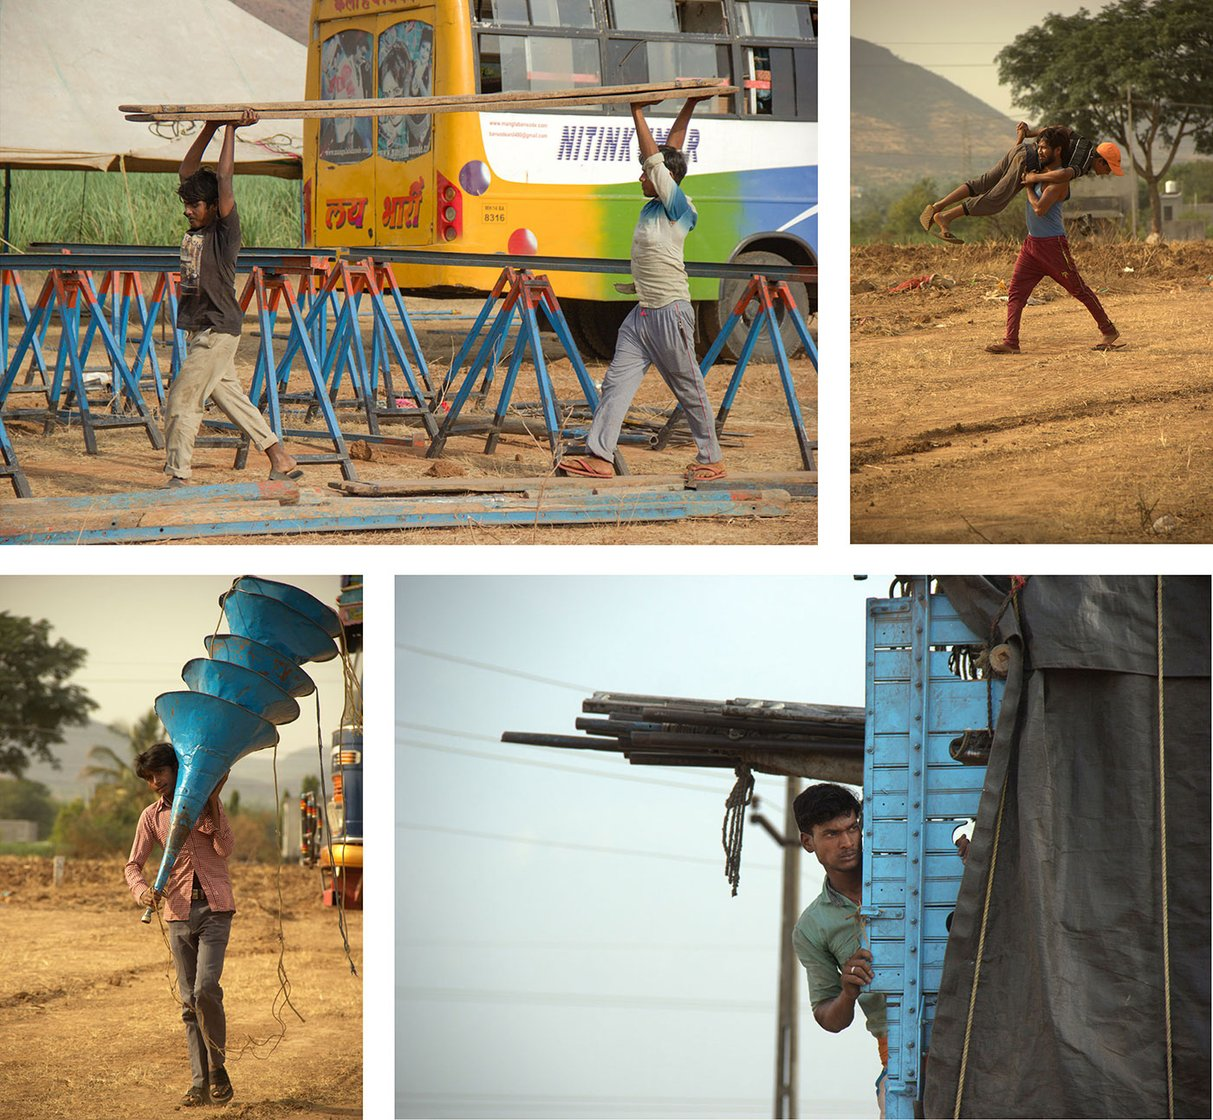 Top left-Labourers from Aumau village, Lucknow district, UP carry planks for the tamasha stage on 4 May 2018 in Karavadi village, Satara district, in western Maharashtra.   Top right-Lallan Paswan from Aumau village, Lucknow district, UP playfully carries one of his friends while working on tents, on 4 May 2018 in Karavadi village, Satara district, in western Maharashtra.   Bottom left- Aravind Kumar carries speakers on 4 May 2018 in Karavadi village, Satara district, in western Maharashtra.   Bottom right- Shreeram Paswan, a labourer from Aumau village, Lucknow district, UP, during stage building time on 4 May 2018 in Karavadi village, Satara district, in western Maharashtra